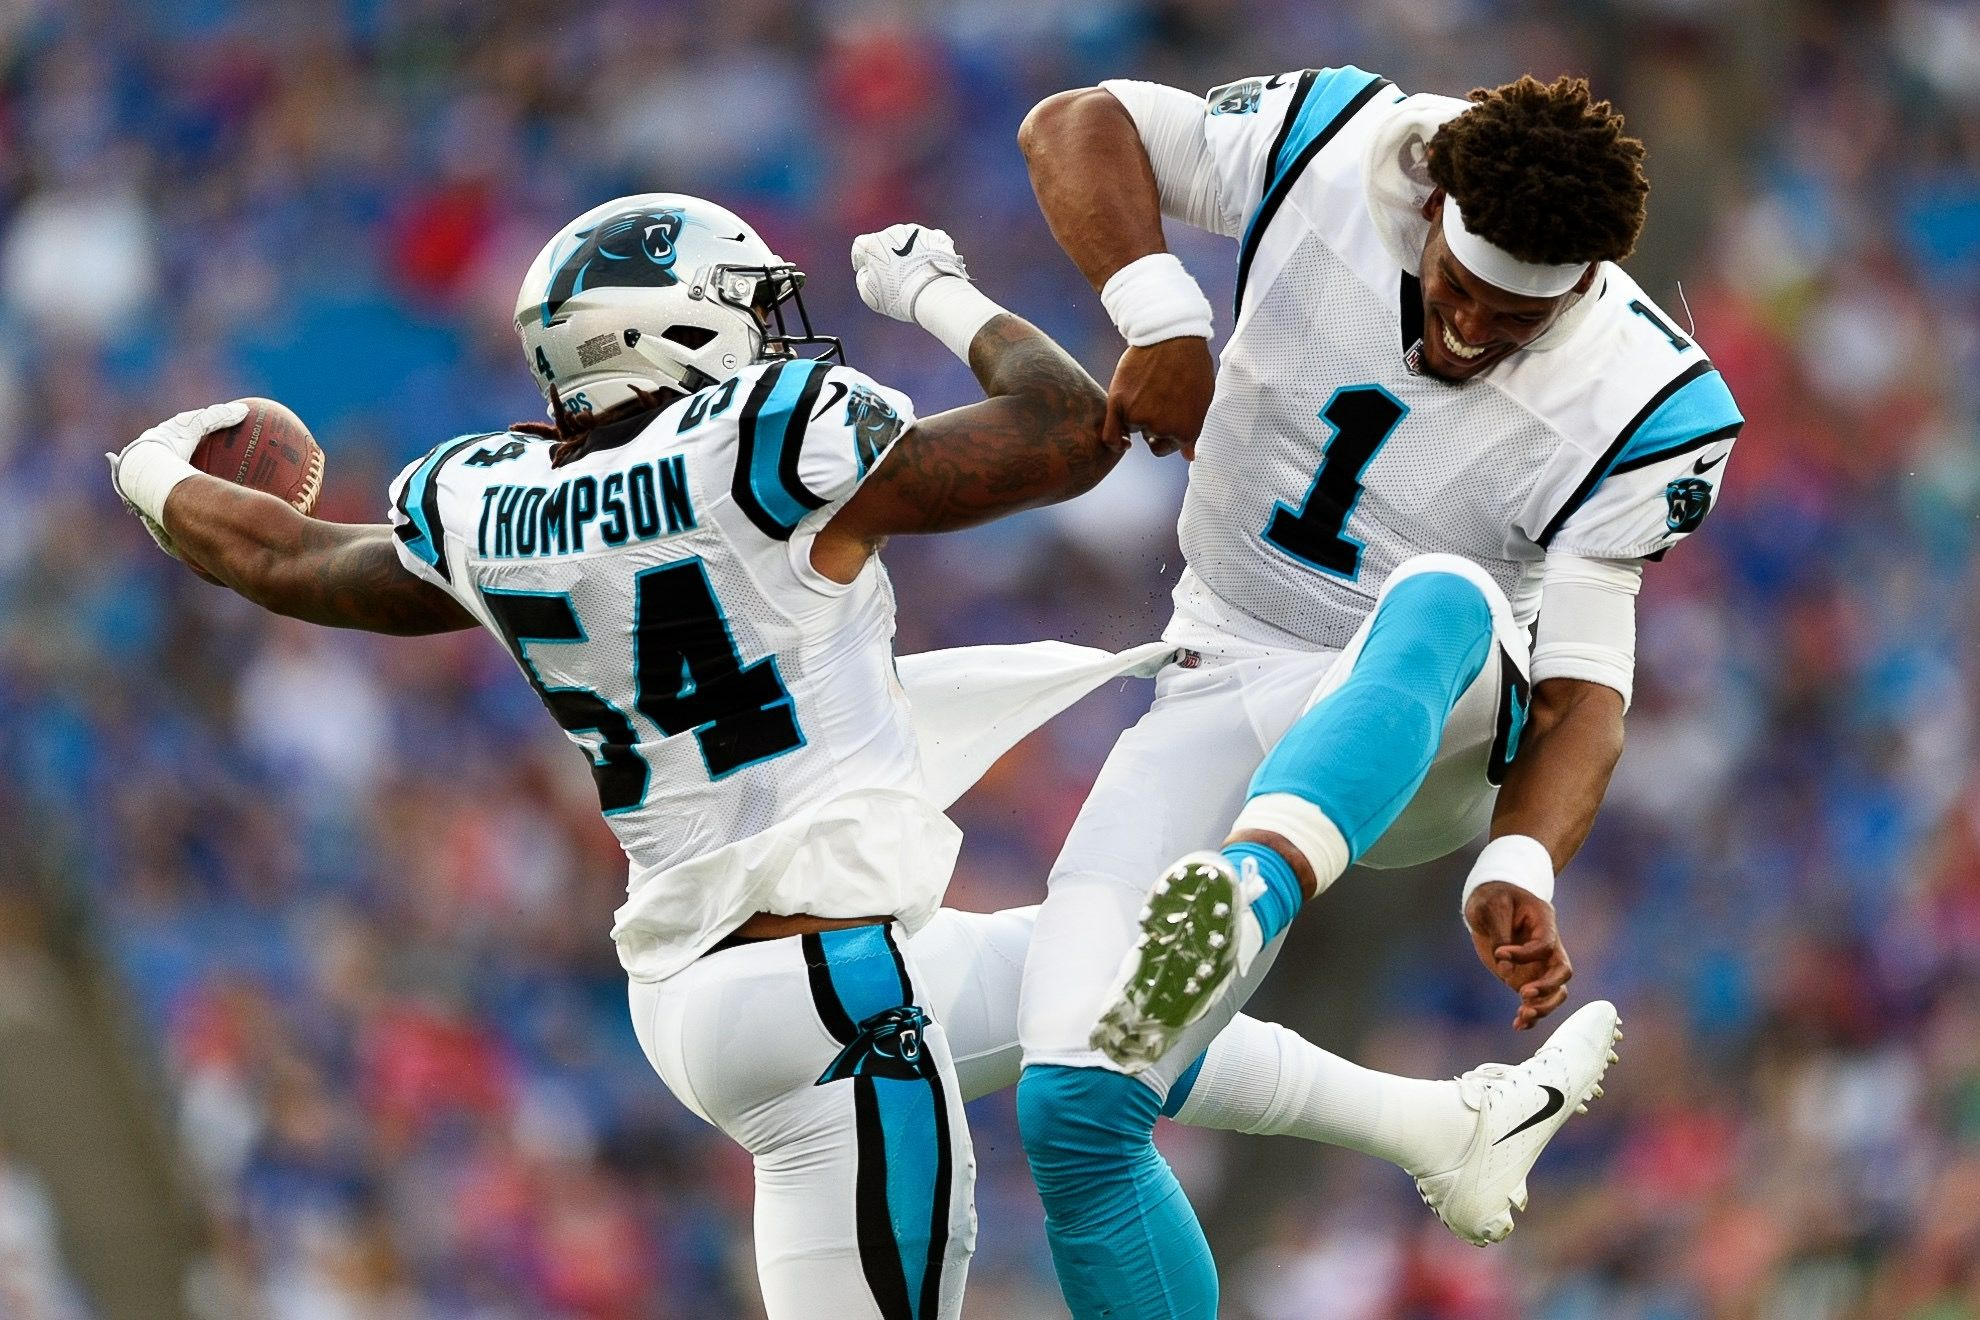 Pin by Cherry Daus on Carolina Panthers Football